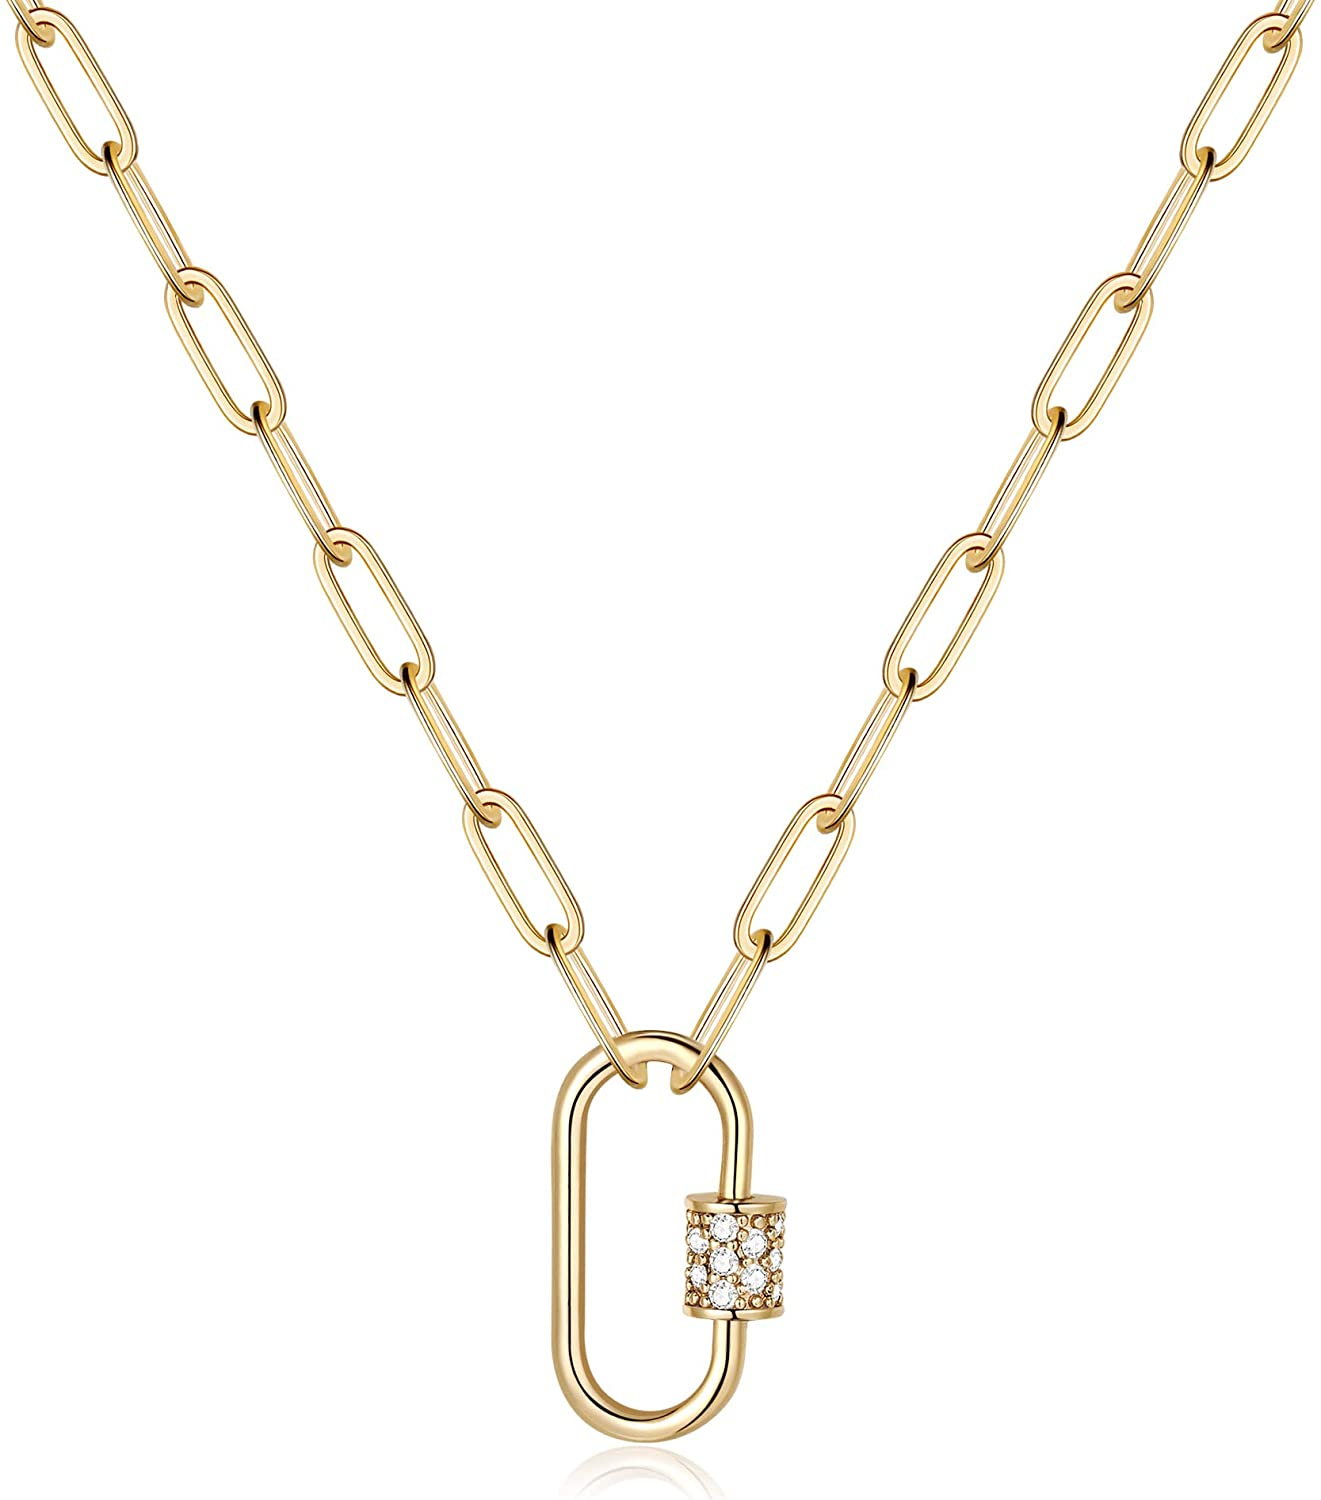 Rose gold plated paper clip chunky oval chain necklace with toggle clasp and rose gold plated stainless steel lock pendant